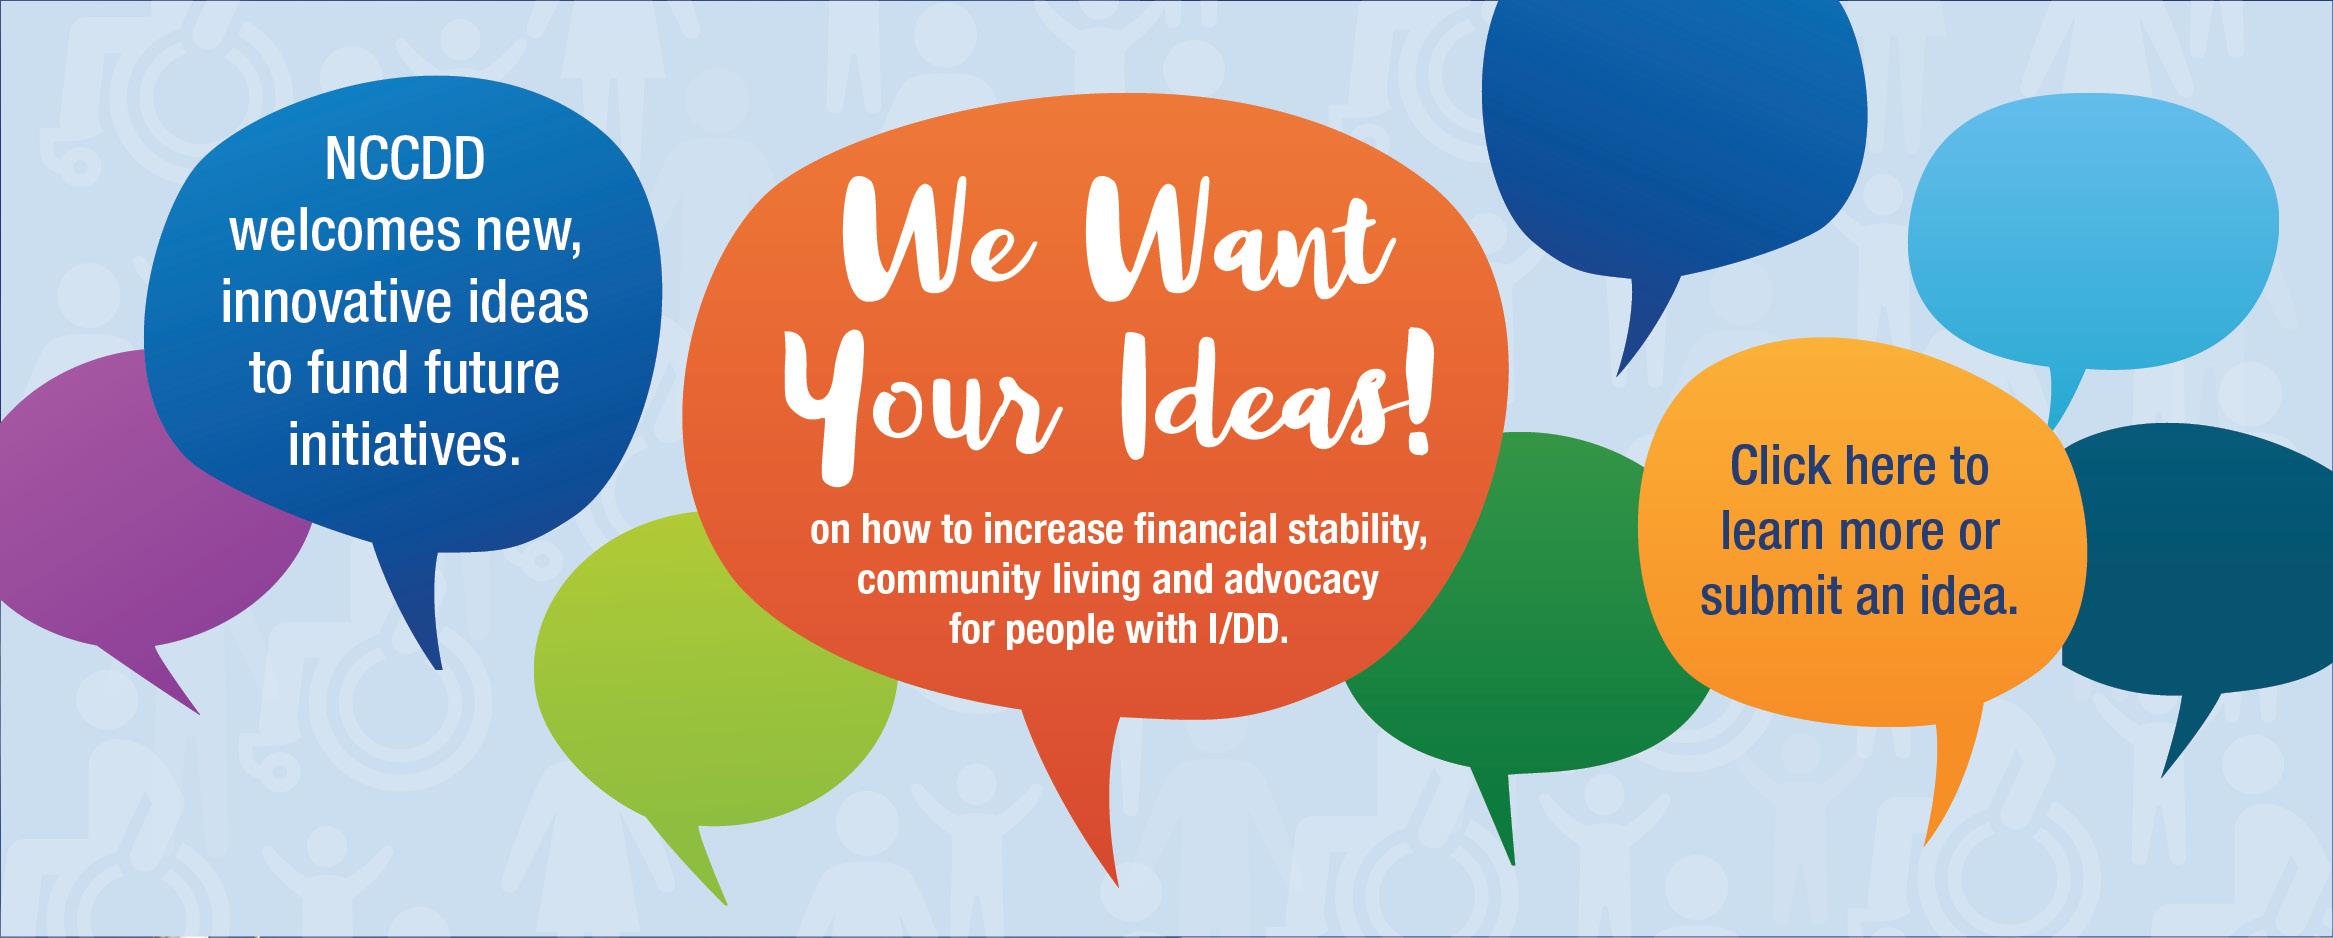 We Want Your Ideas! on how to increase financial stability,community living and advocacy for people with I/DD. Click here to learn more or submit an idea.